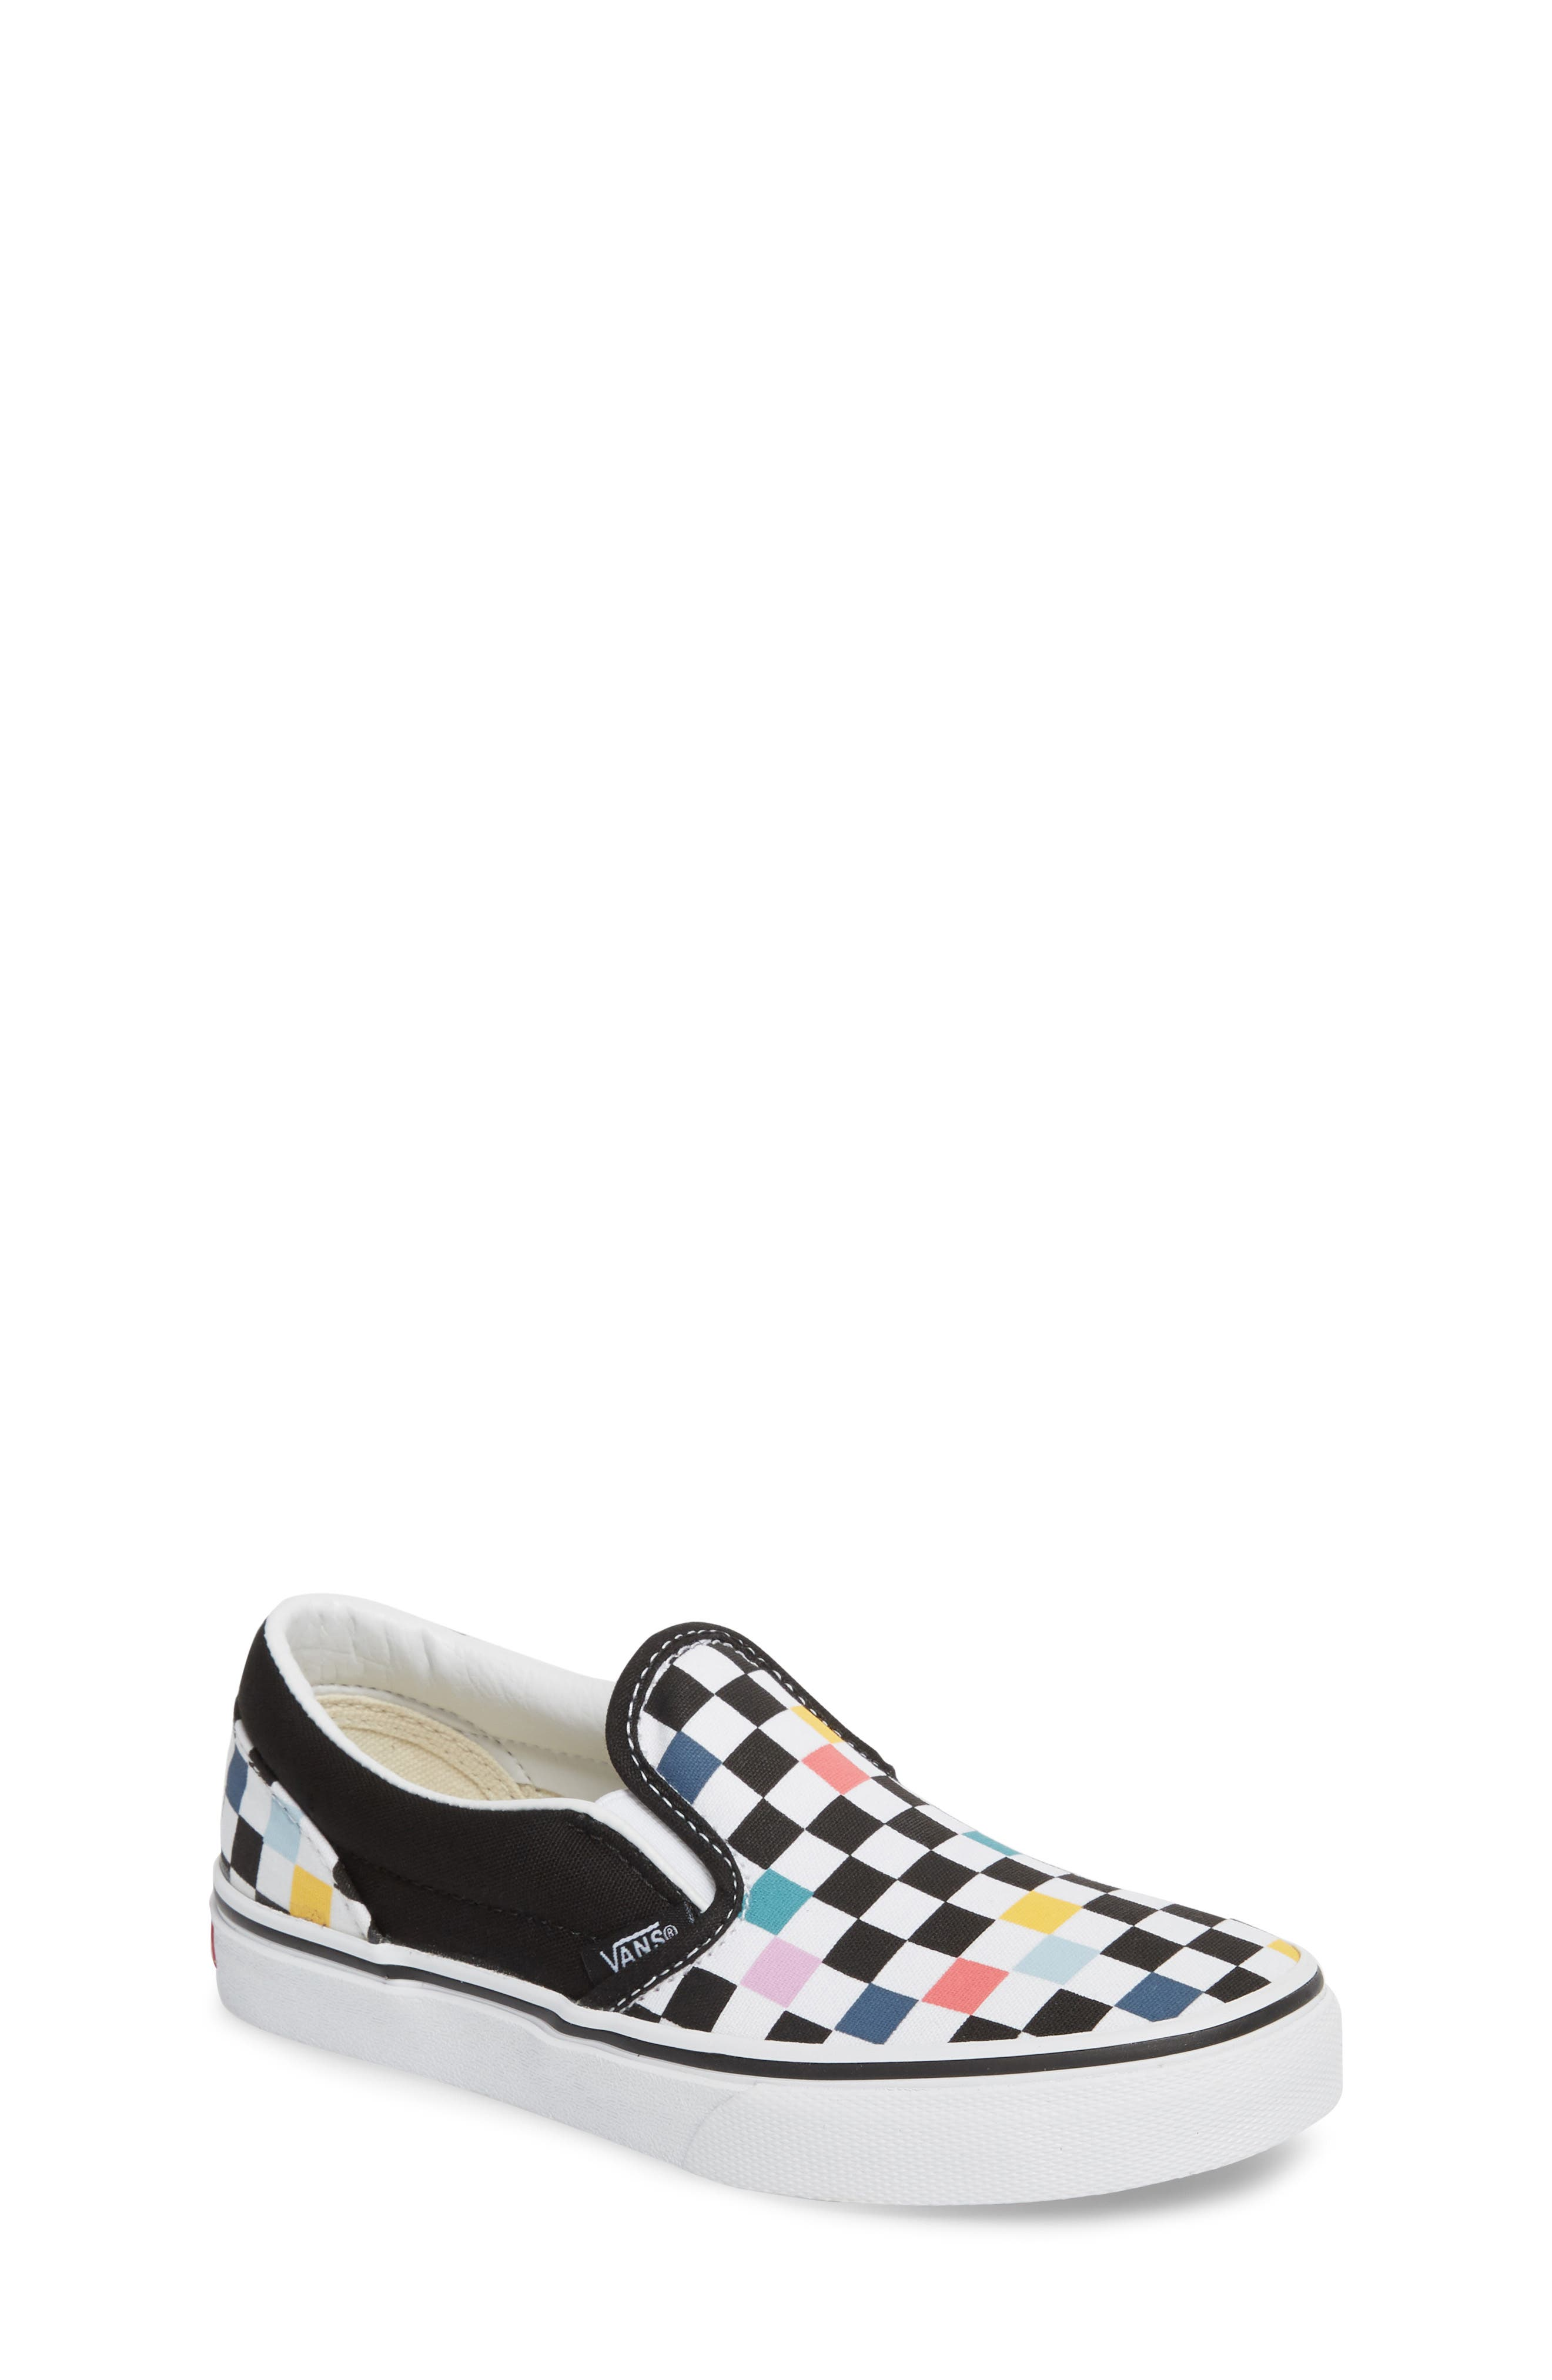 Party Check Slip-On Sneaker, Main, color, 001